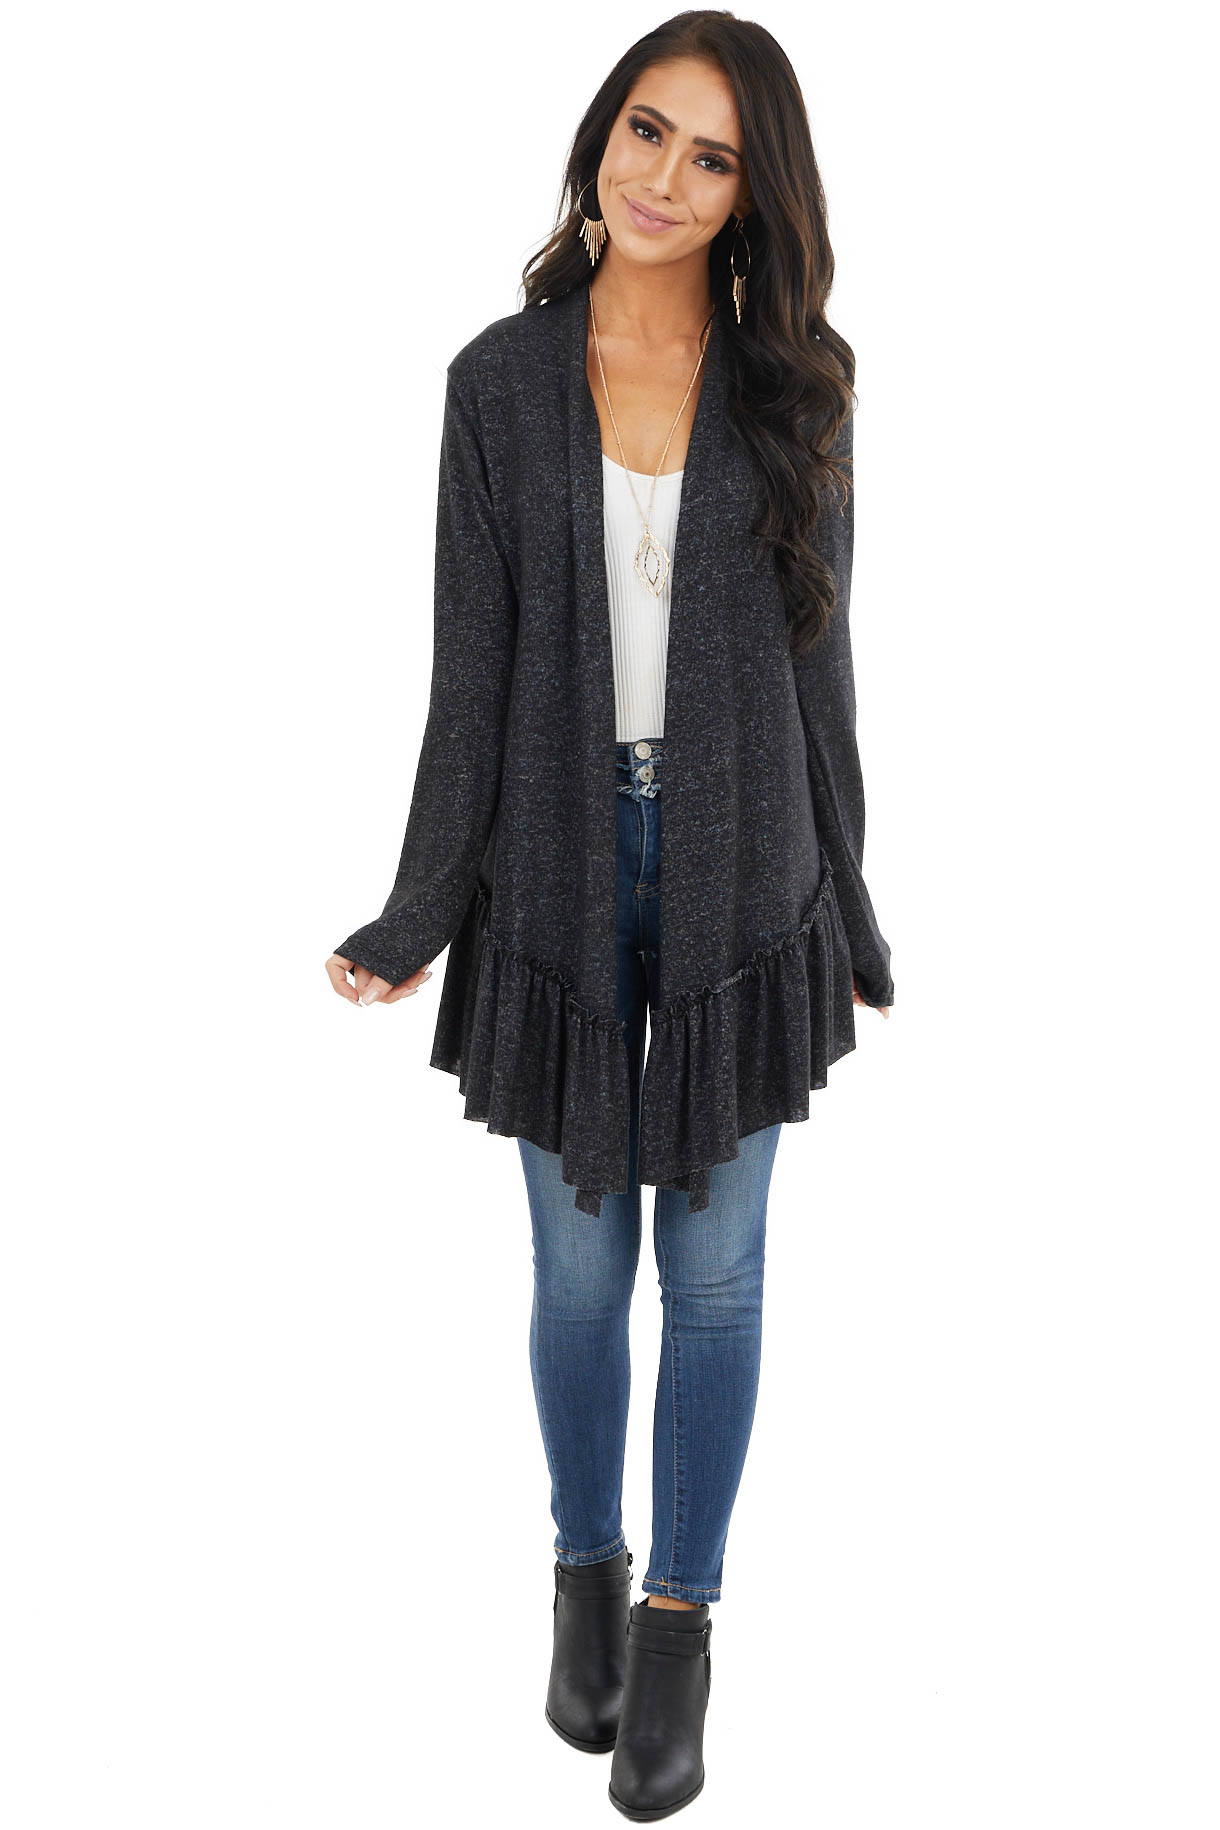 Charcoal Two Tone Long Sleeve Cardigan with Ruffle Detail